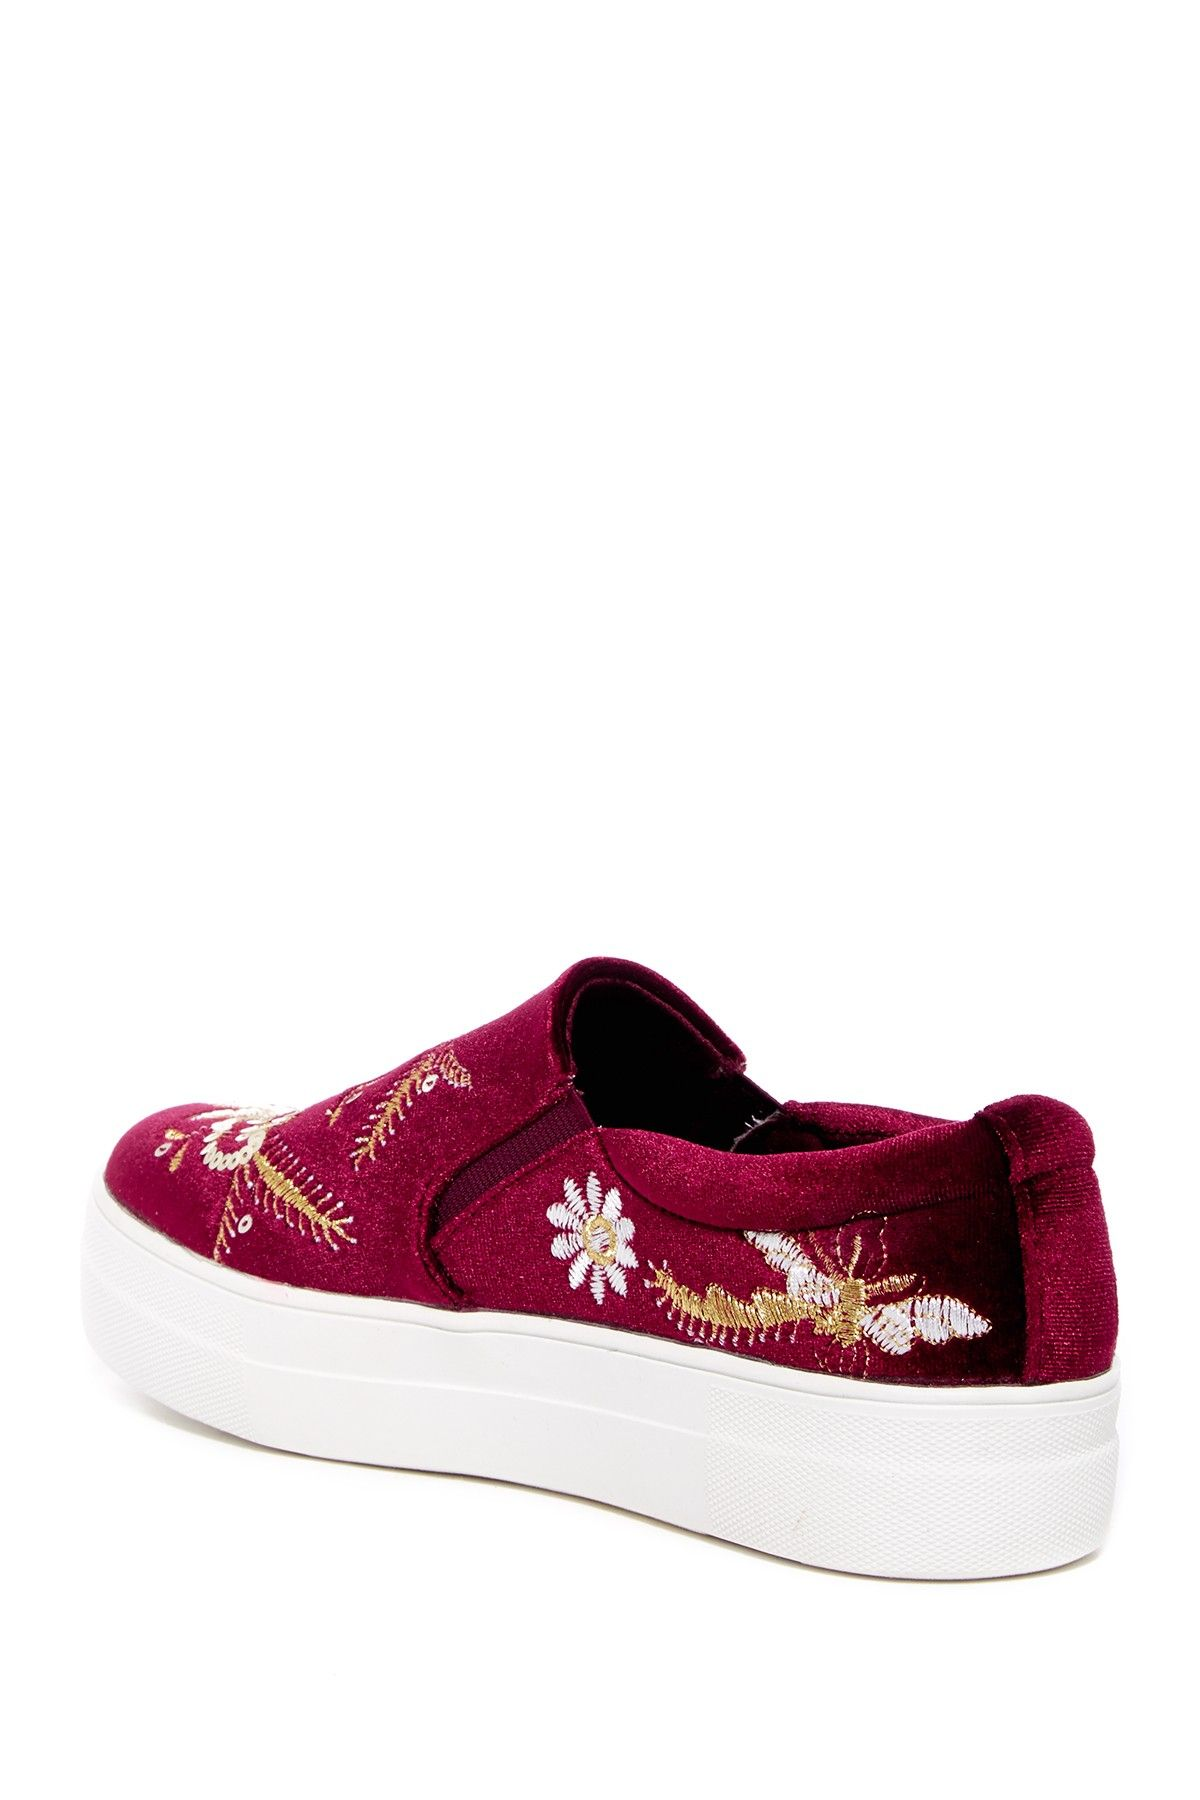 Carlos By Carlos Santana Avery Embroidered Velvet Slip-On Sneaker PDXsSj2N